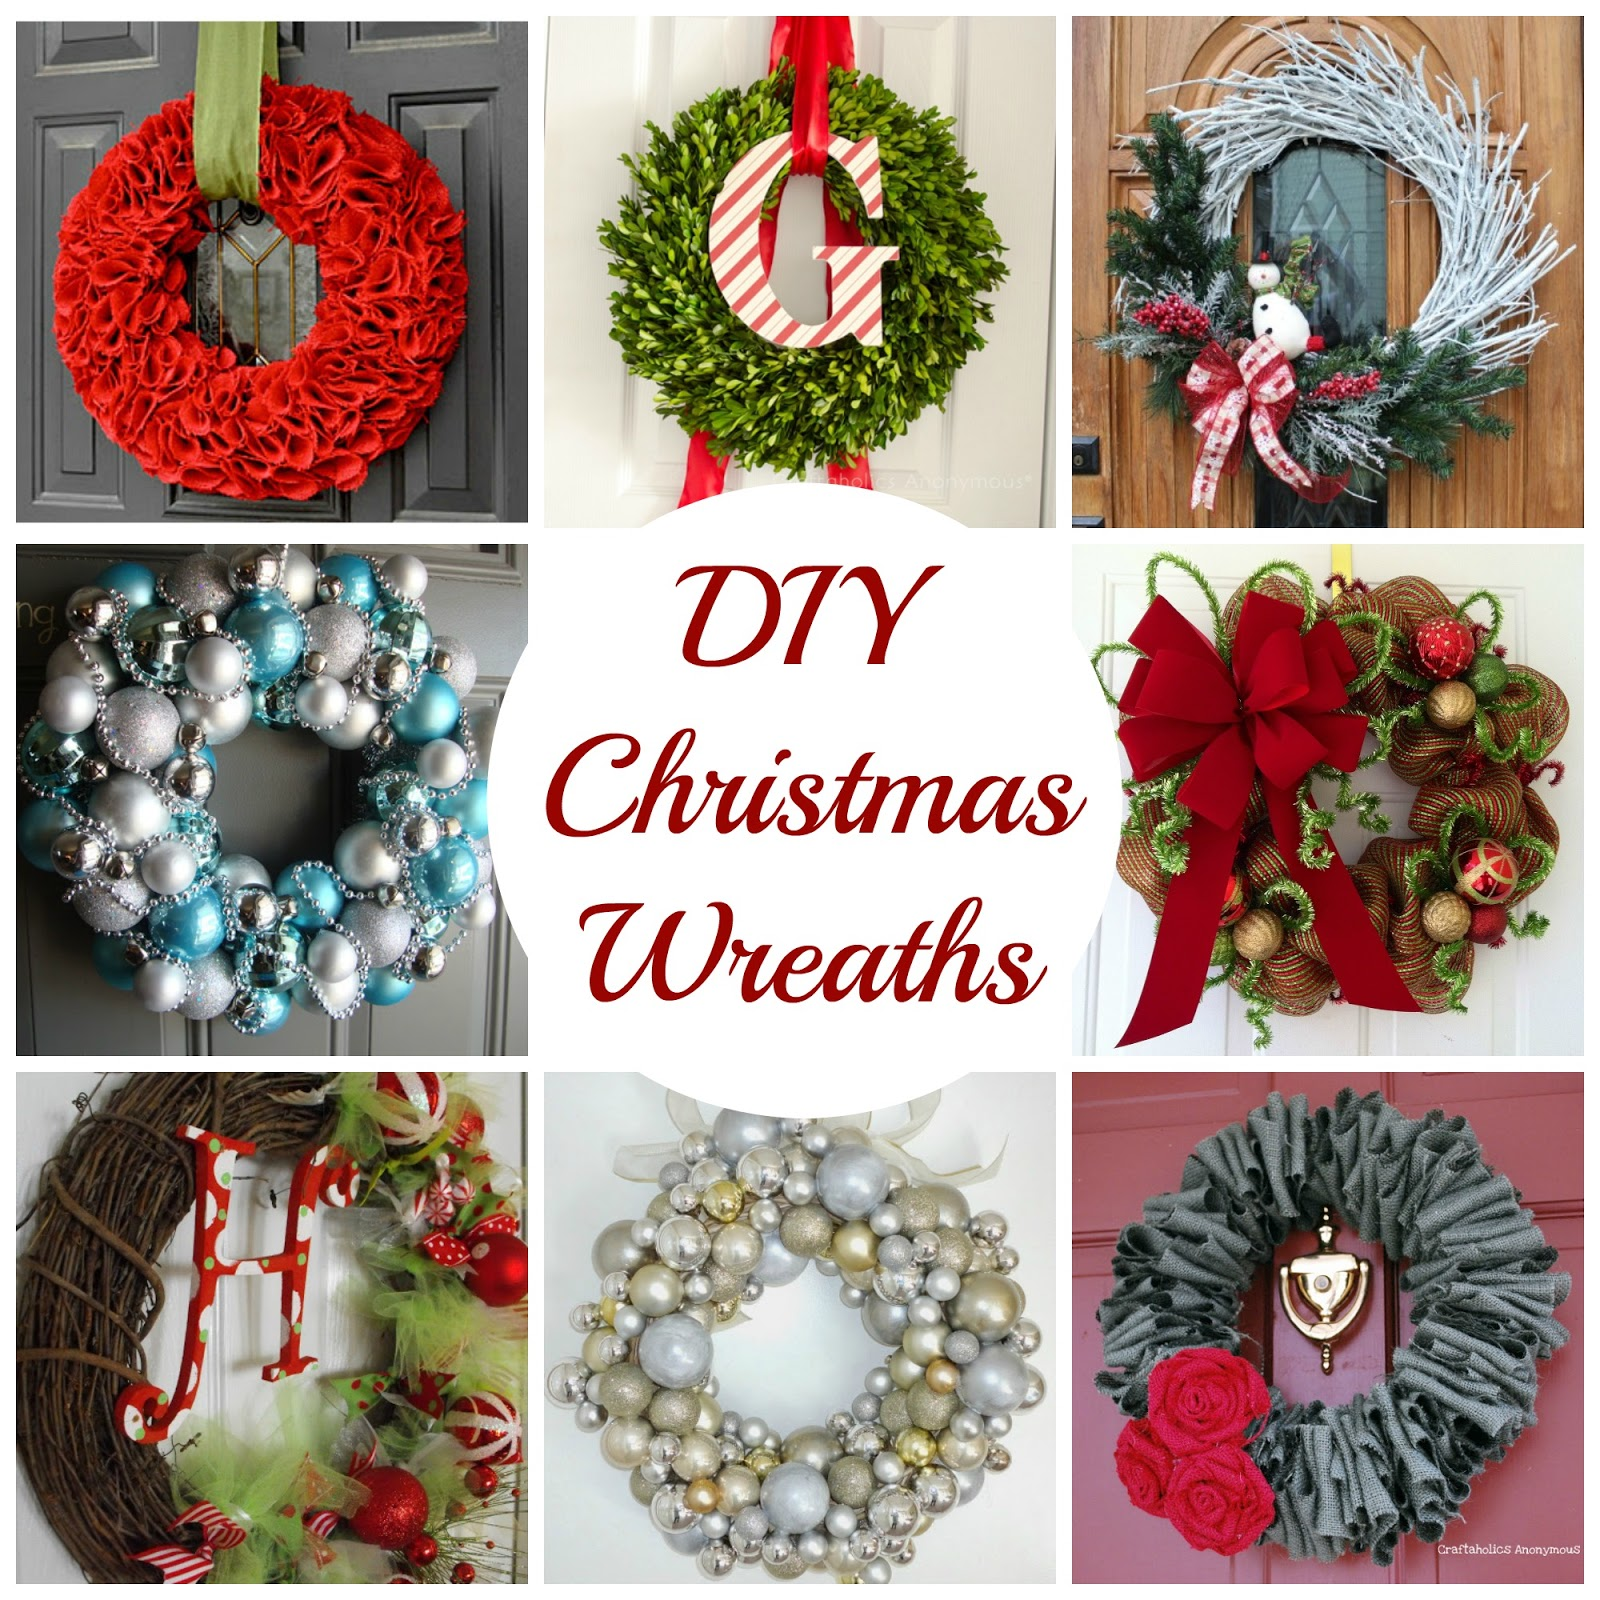 Decorating Wreaths: Decorating Cents: DIY Christmas Wreaths